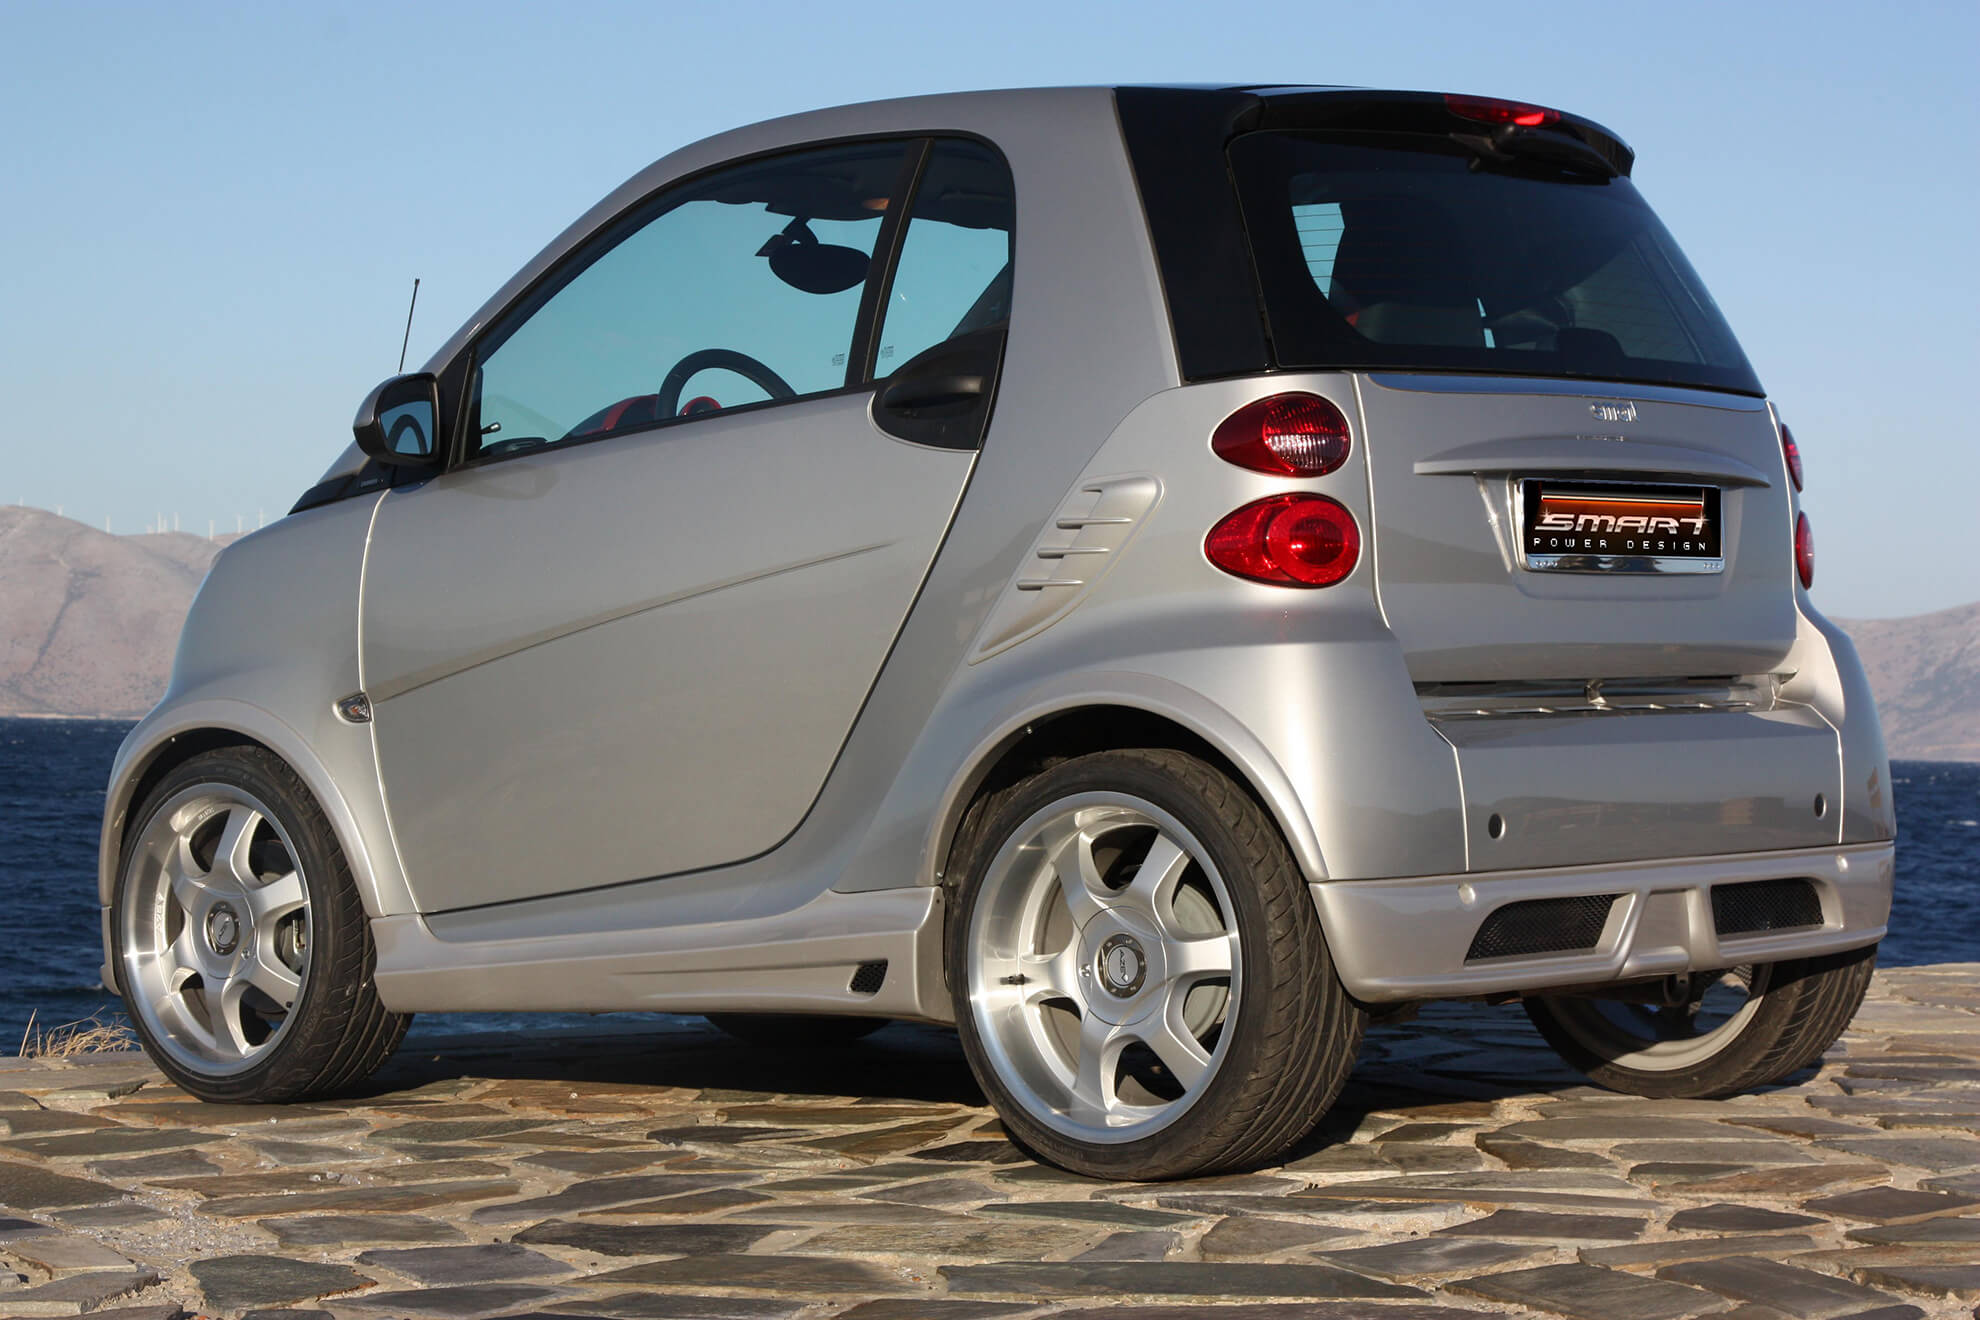 This is the Smart Fortwo 451 from the rear view. It is tuned by Smart Power Design.